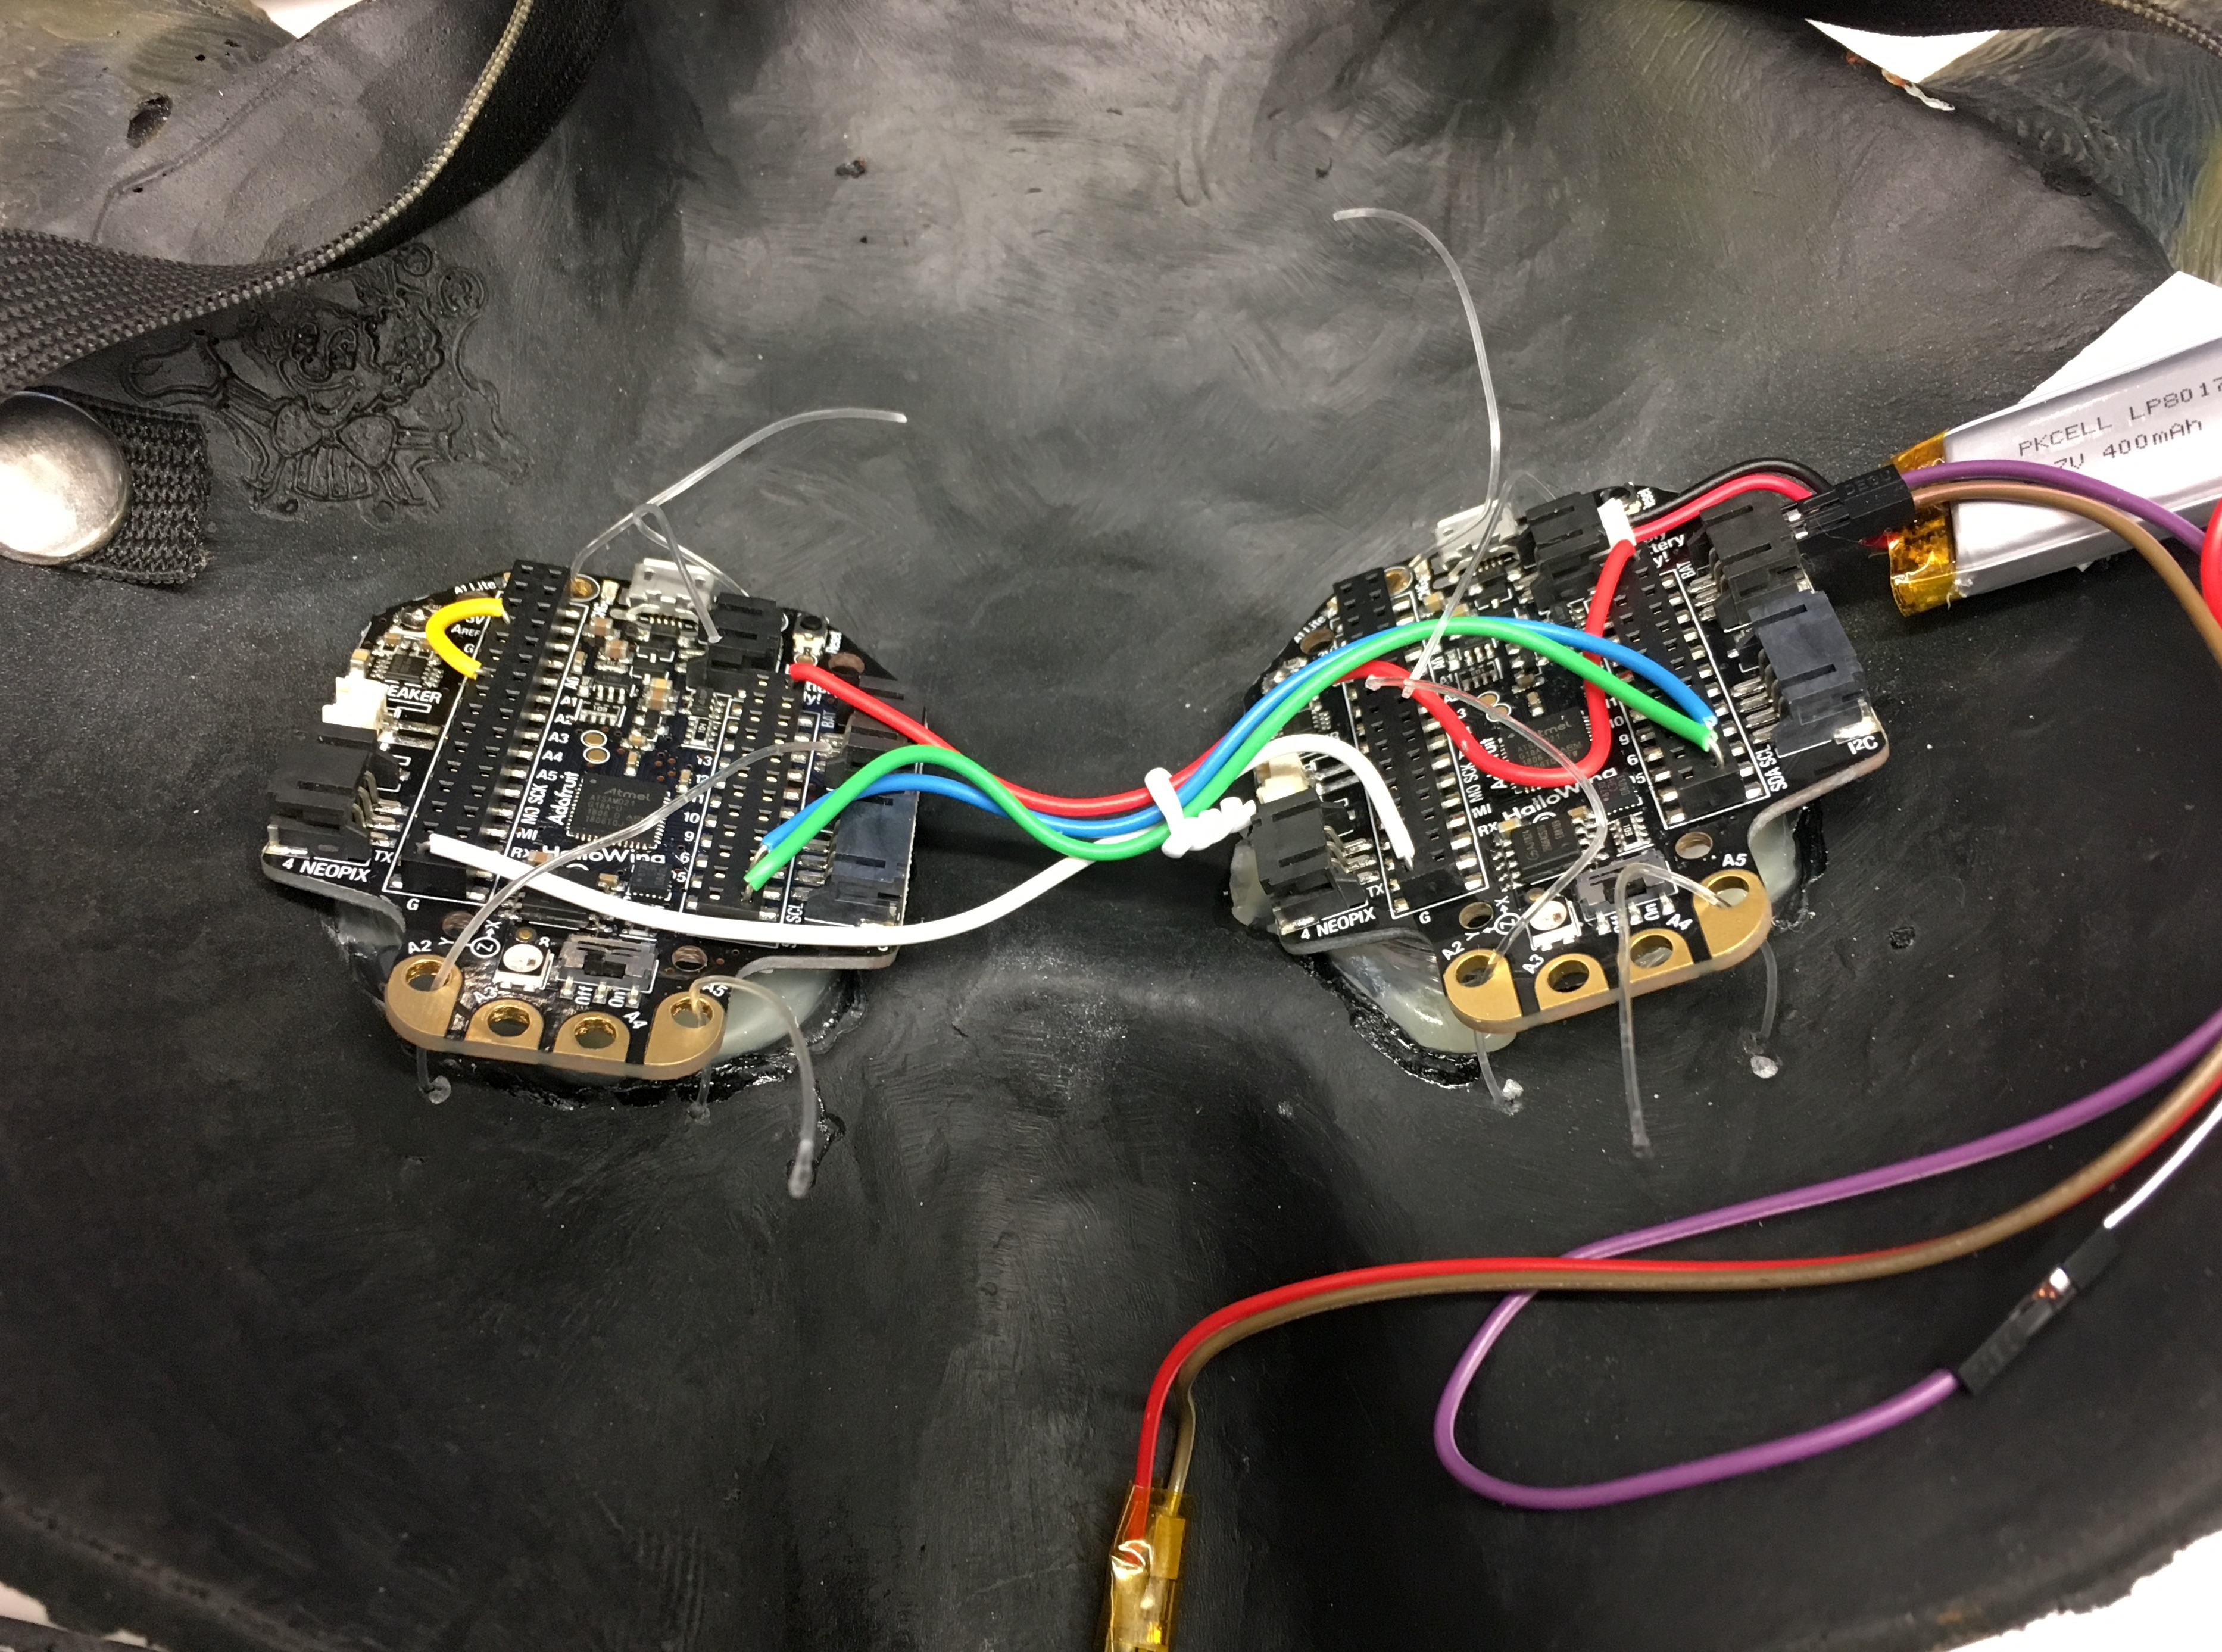 adafruit_products_IMG_0781.jpg